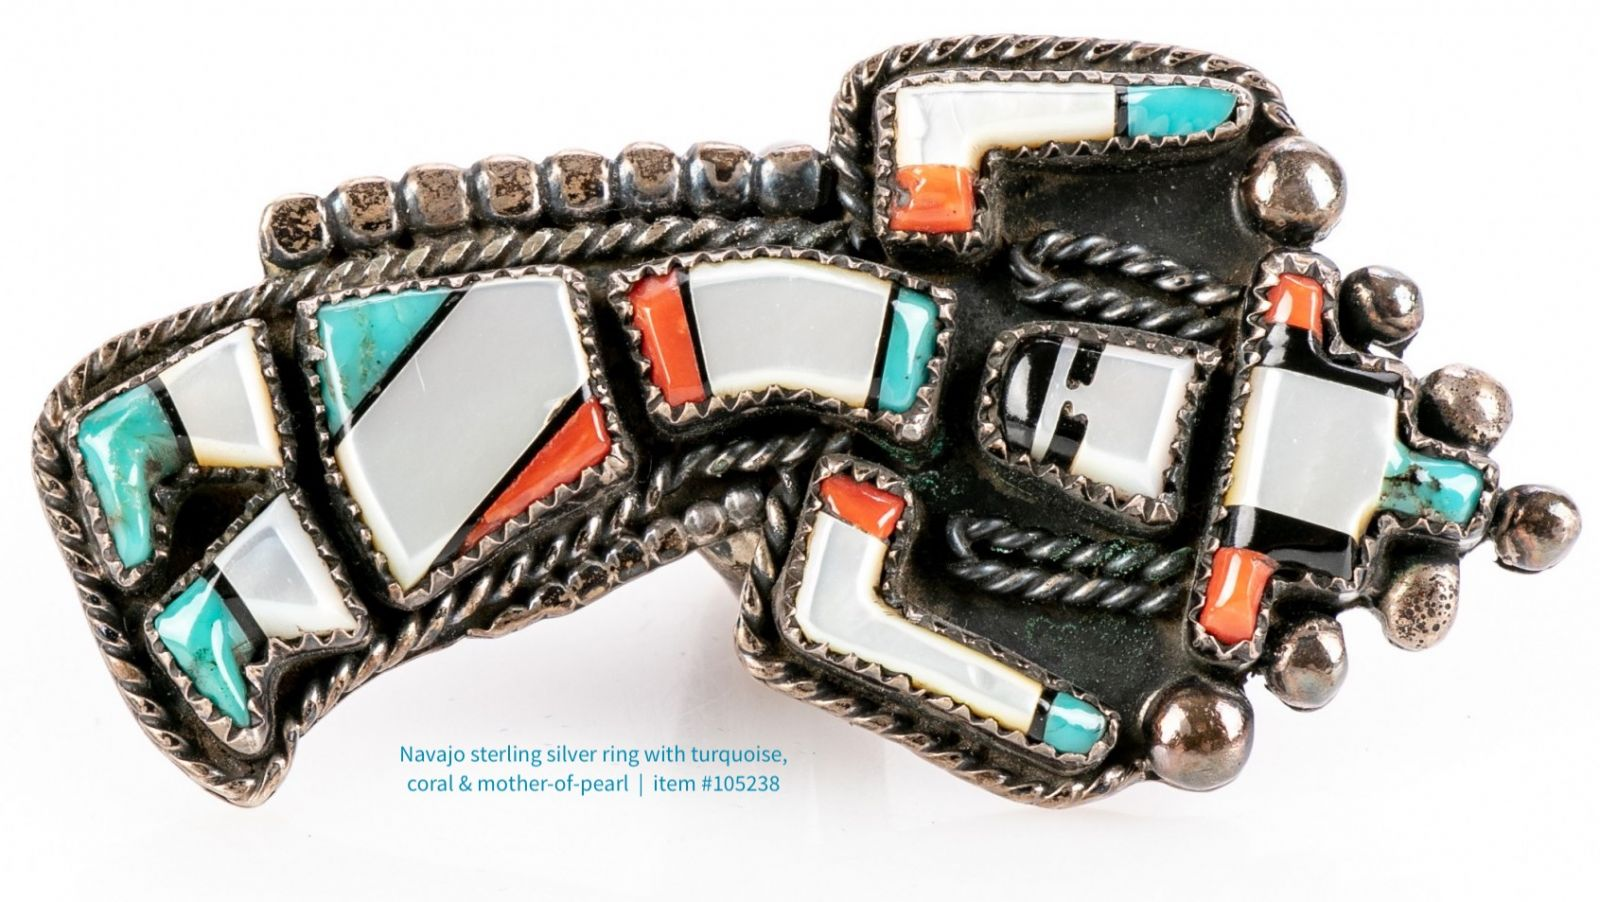 Use of natural materials including turquoise, coral, and mother-of-pearl are indicative of Native American jewelry style